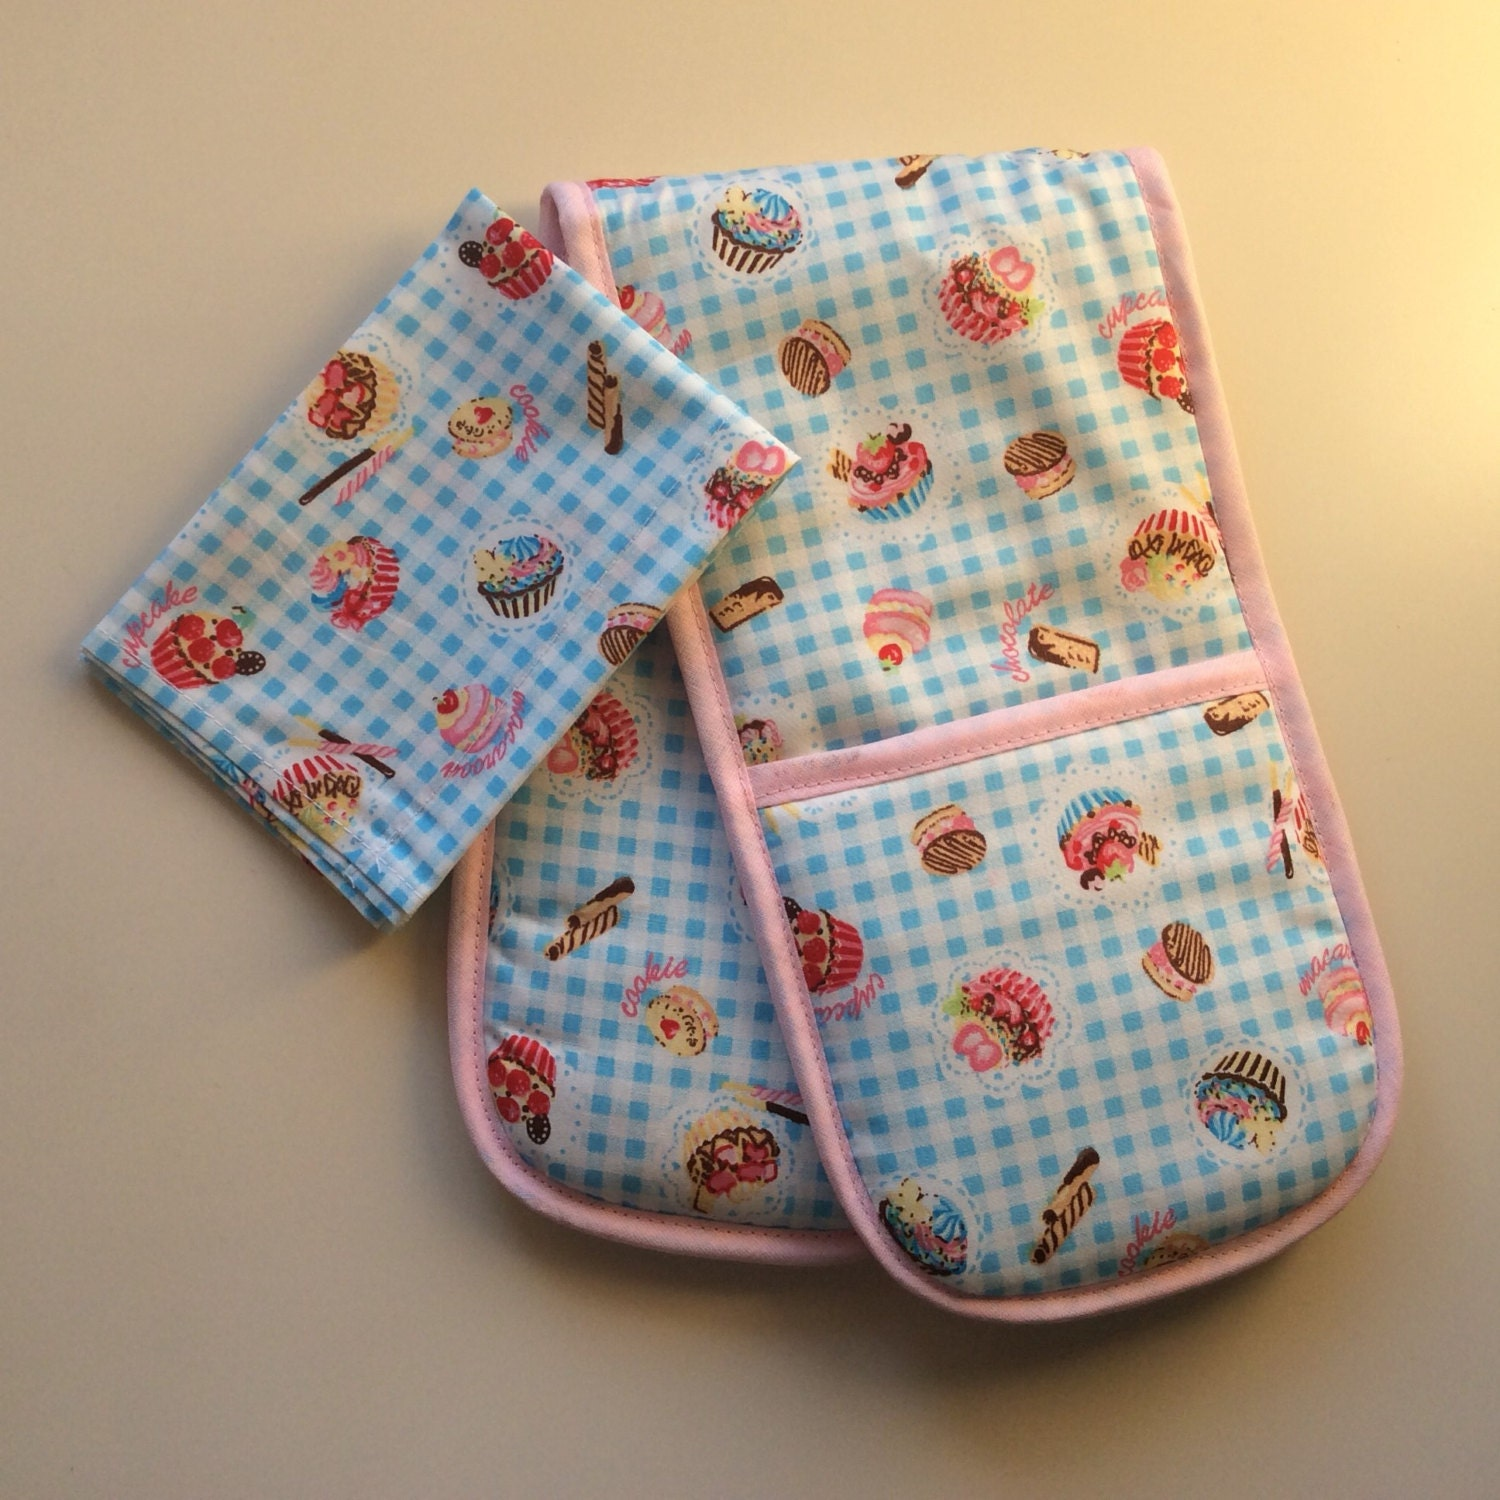 Toy Oven Glove and Tea Towel. Home corner toy kitchen blue cupcakes toddler gift